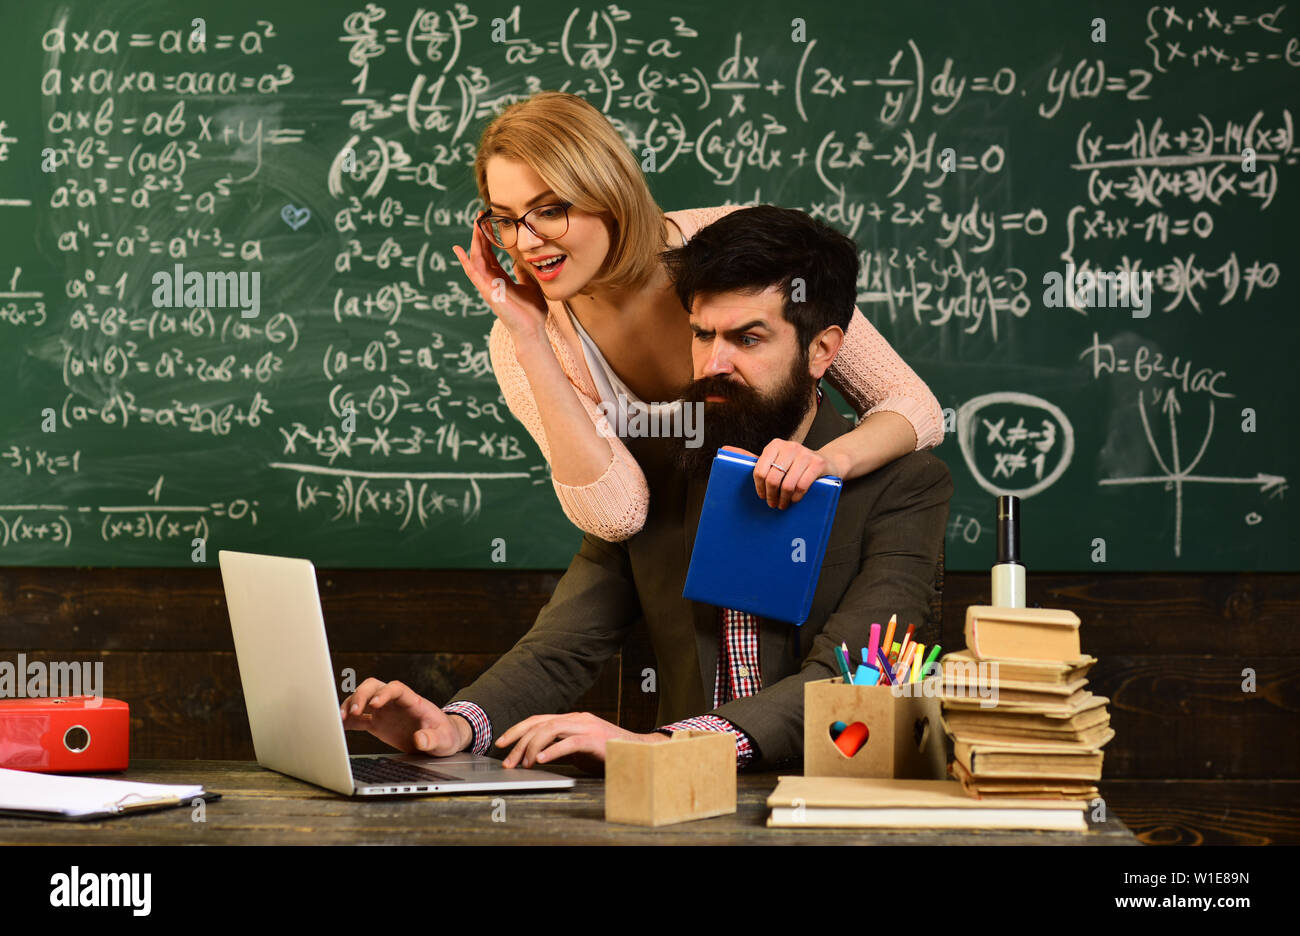 E-learning Online Study Learning Concept, E-learning education and university concept, Tutor asks the tutee to find the definition in the textbook, Te - Stock Image